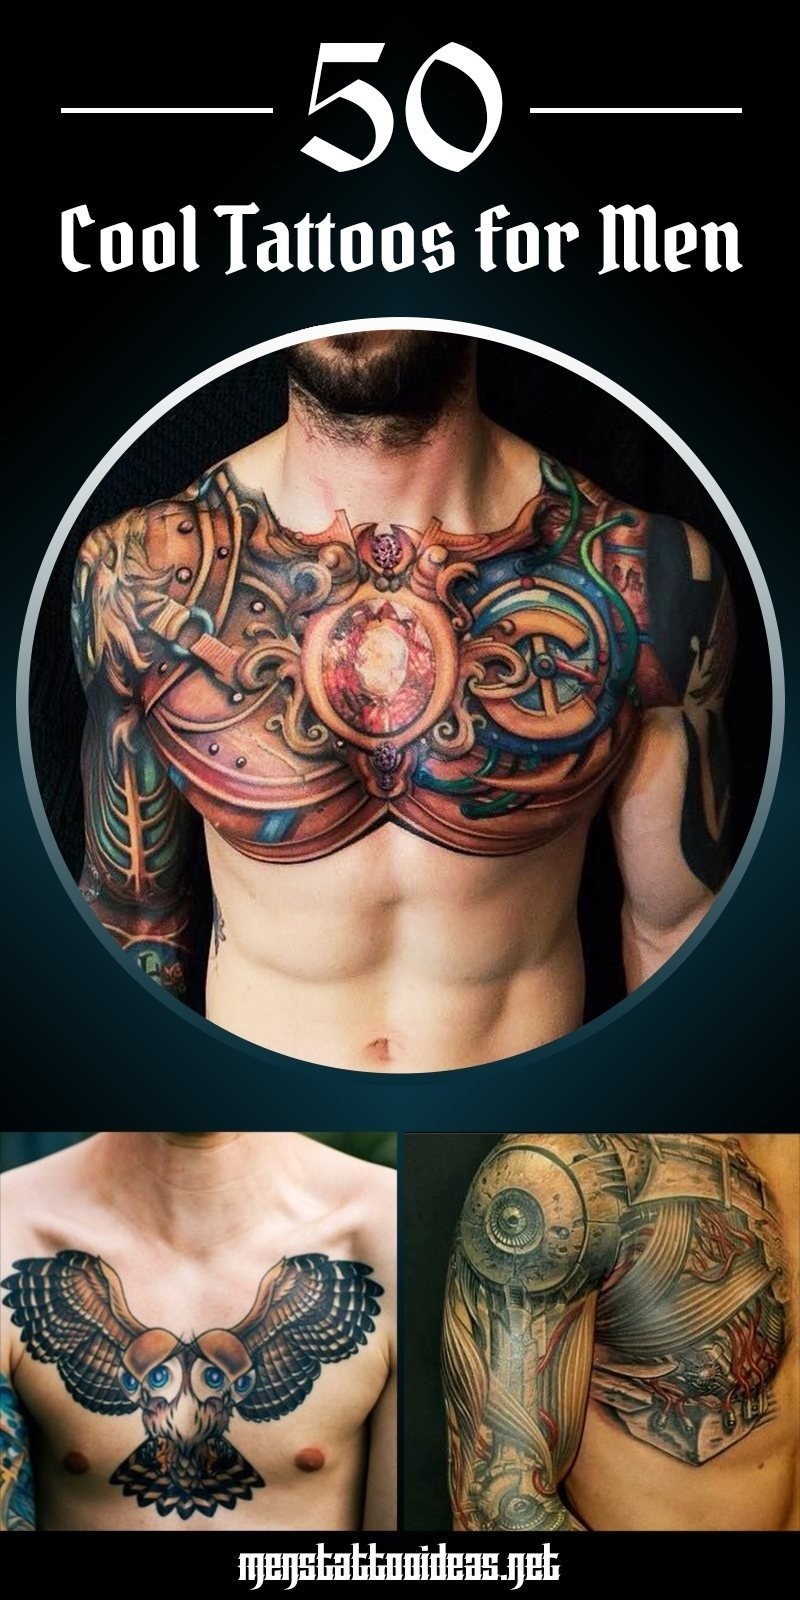 10 Stunning Cool Tattoos Ideas For Guys cool tattoos for men best tattoo ideas and designs for guys 3 2020